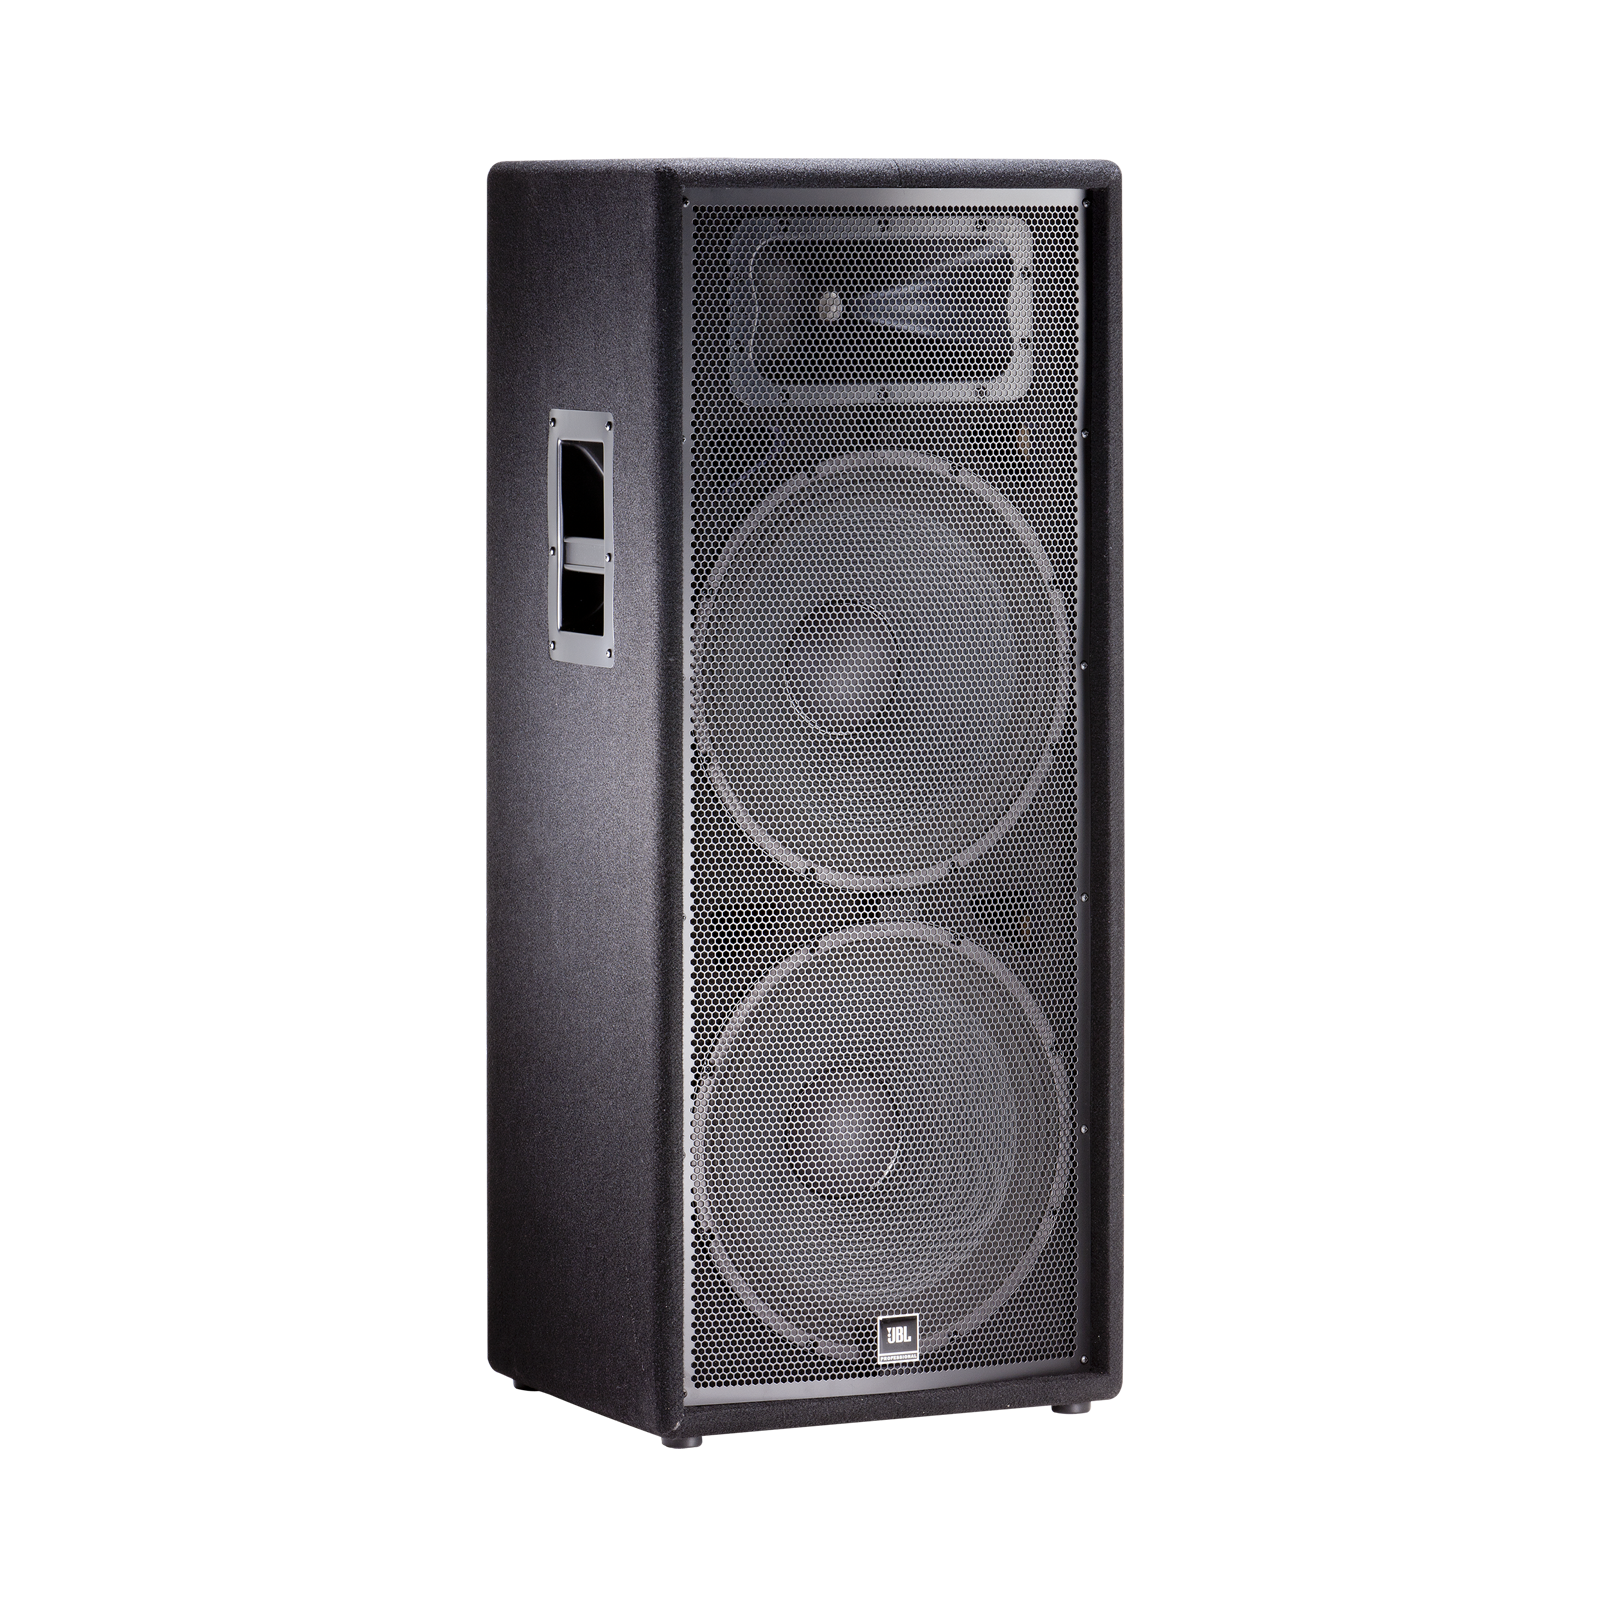 Jbl Jrx225 Dual 15 Two Way Sound Reinforcement Loudspeaker System Volts Power Output Of Each Speaker 10 Watt With 4 Ohm Impedance